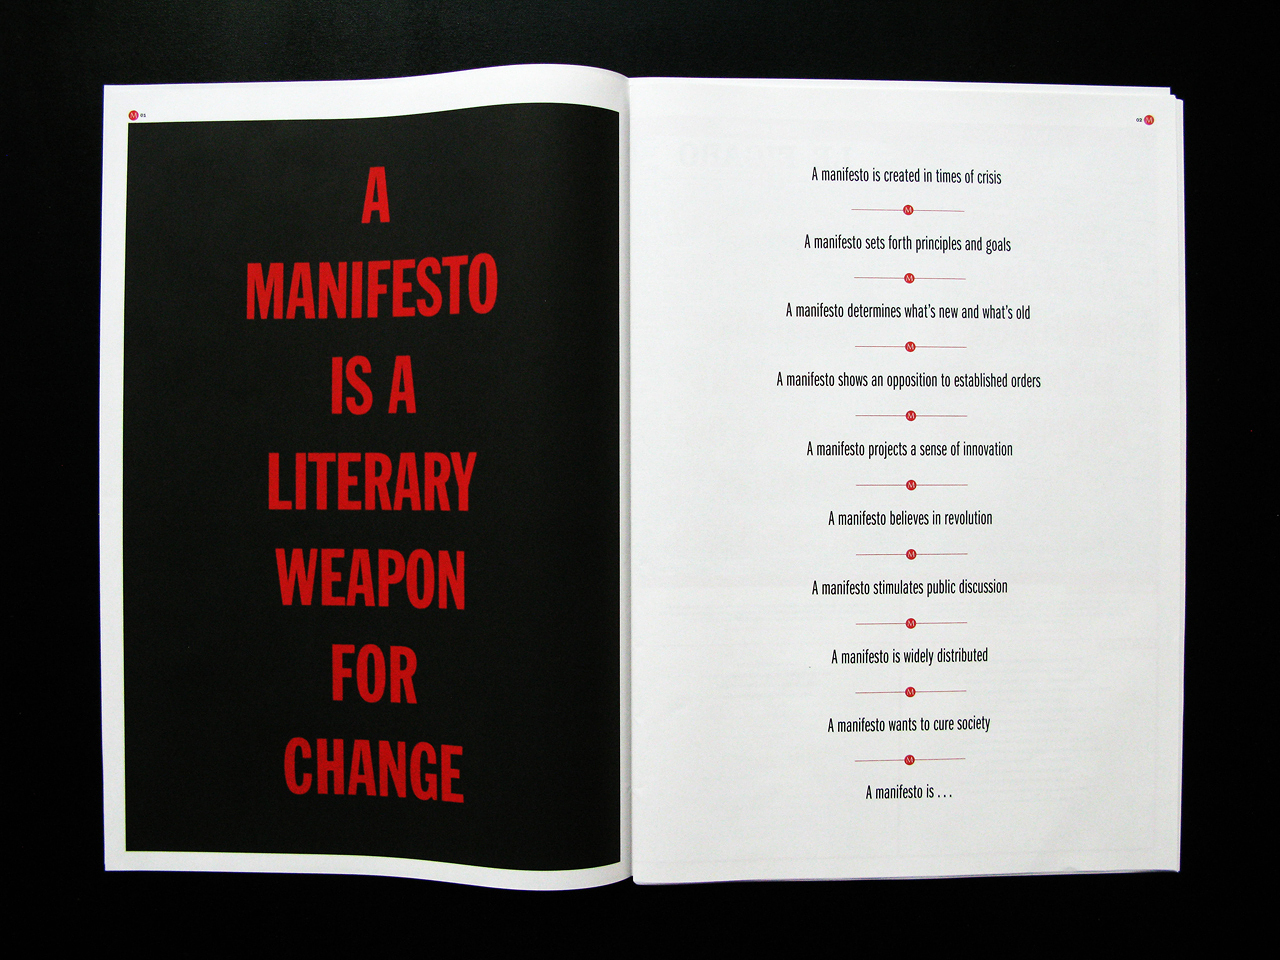 A manifesto is a literary weapon for change!